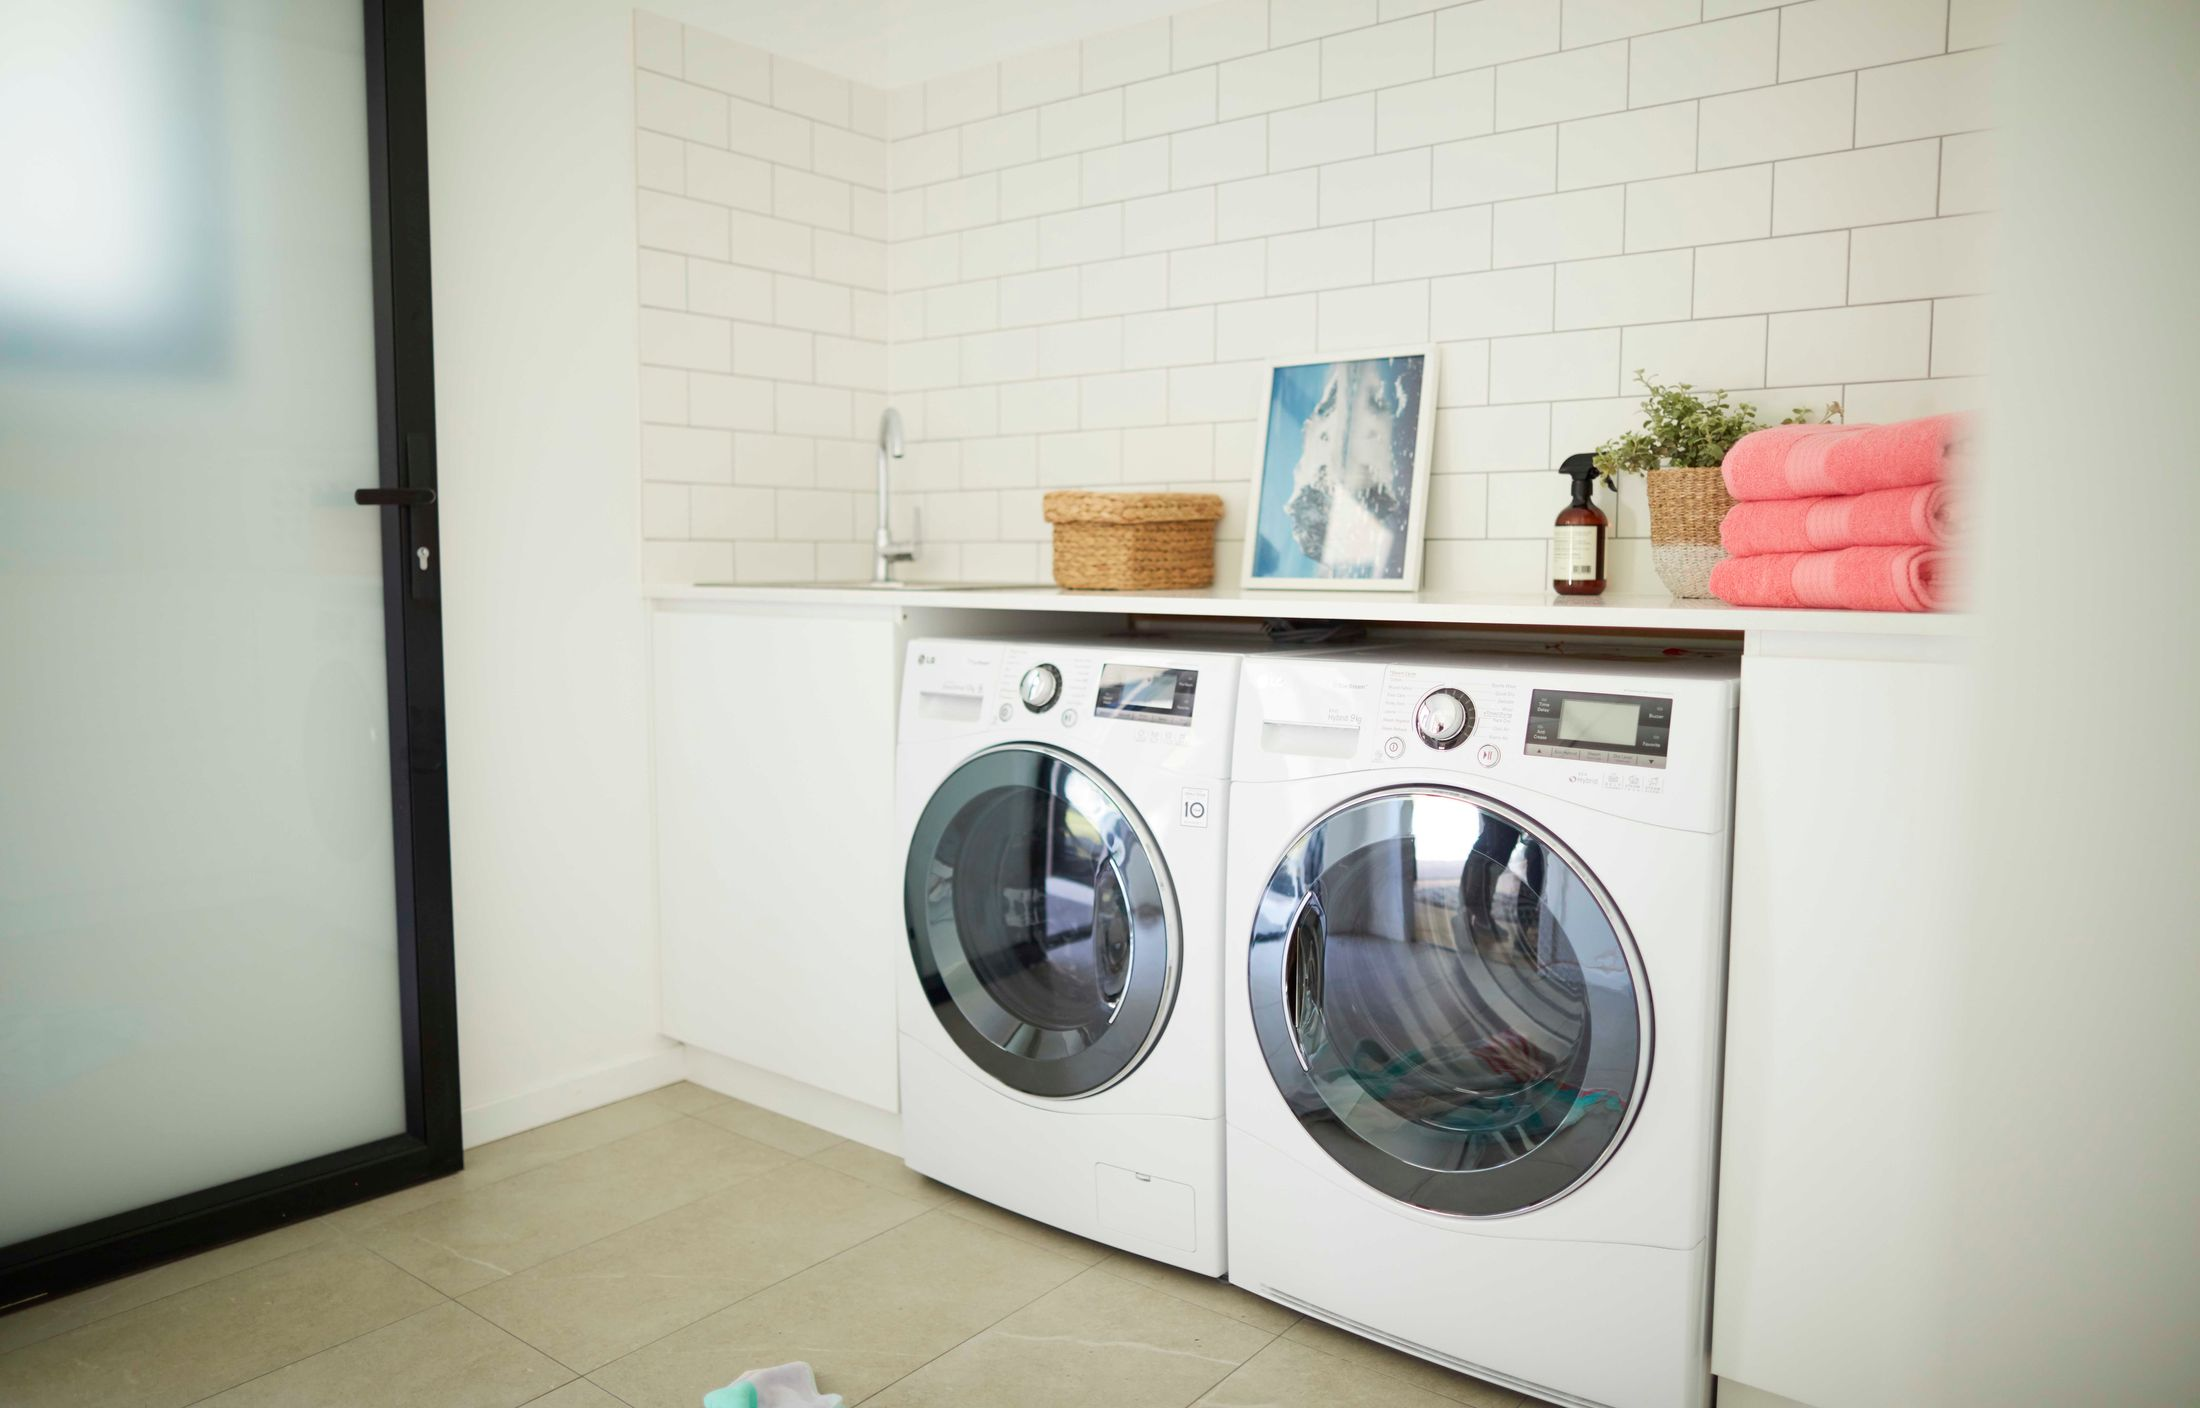 Five Features To Look For When Buying A Washing Machine